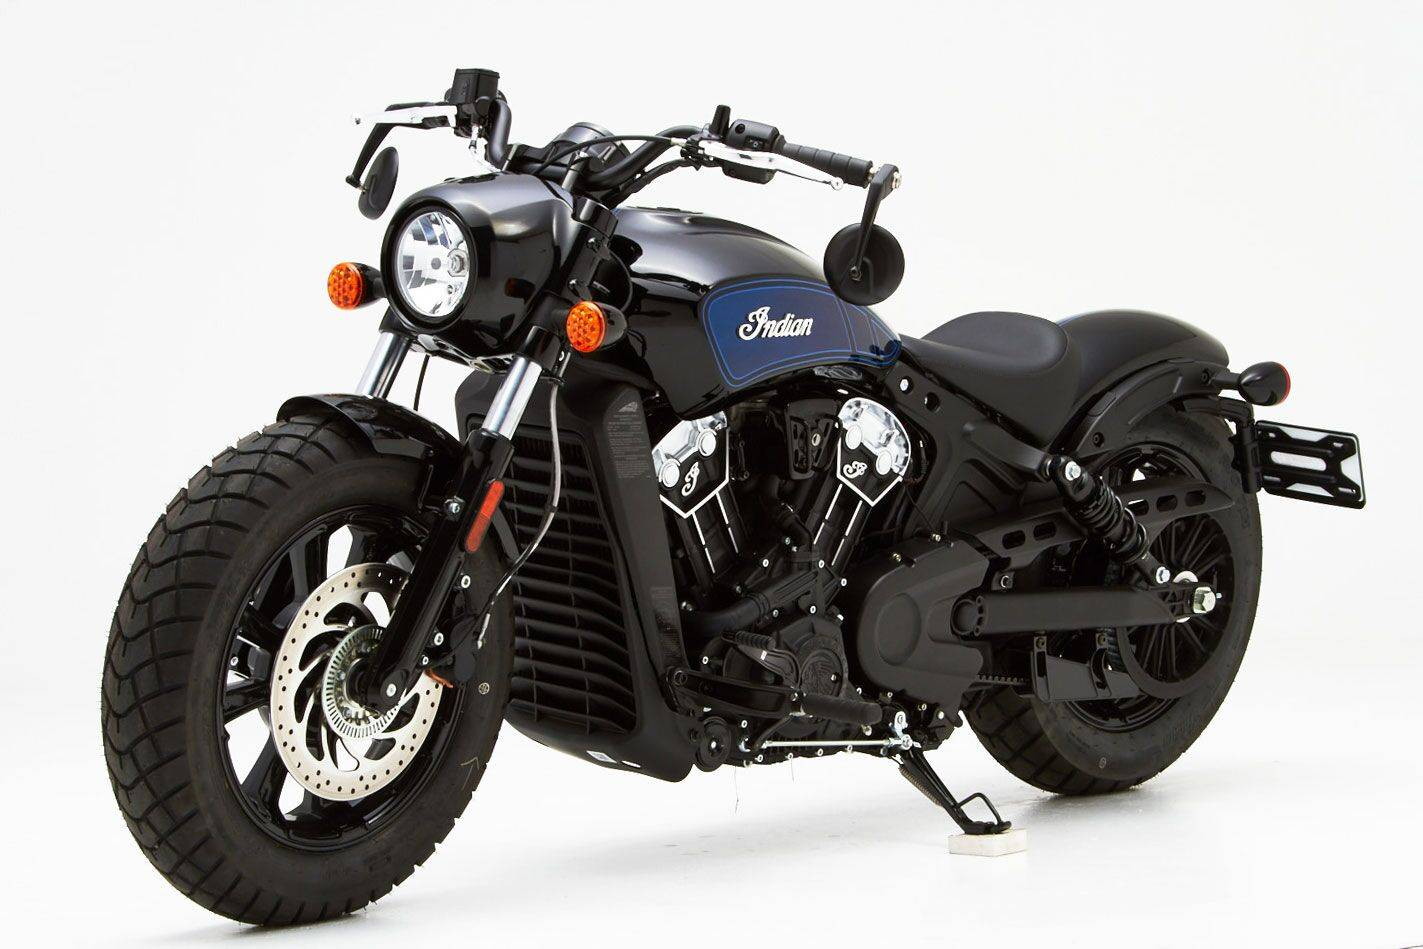 2019 Indian Scout Bobber ABS for sale 79273